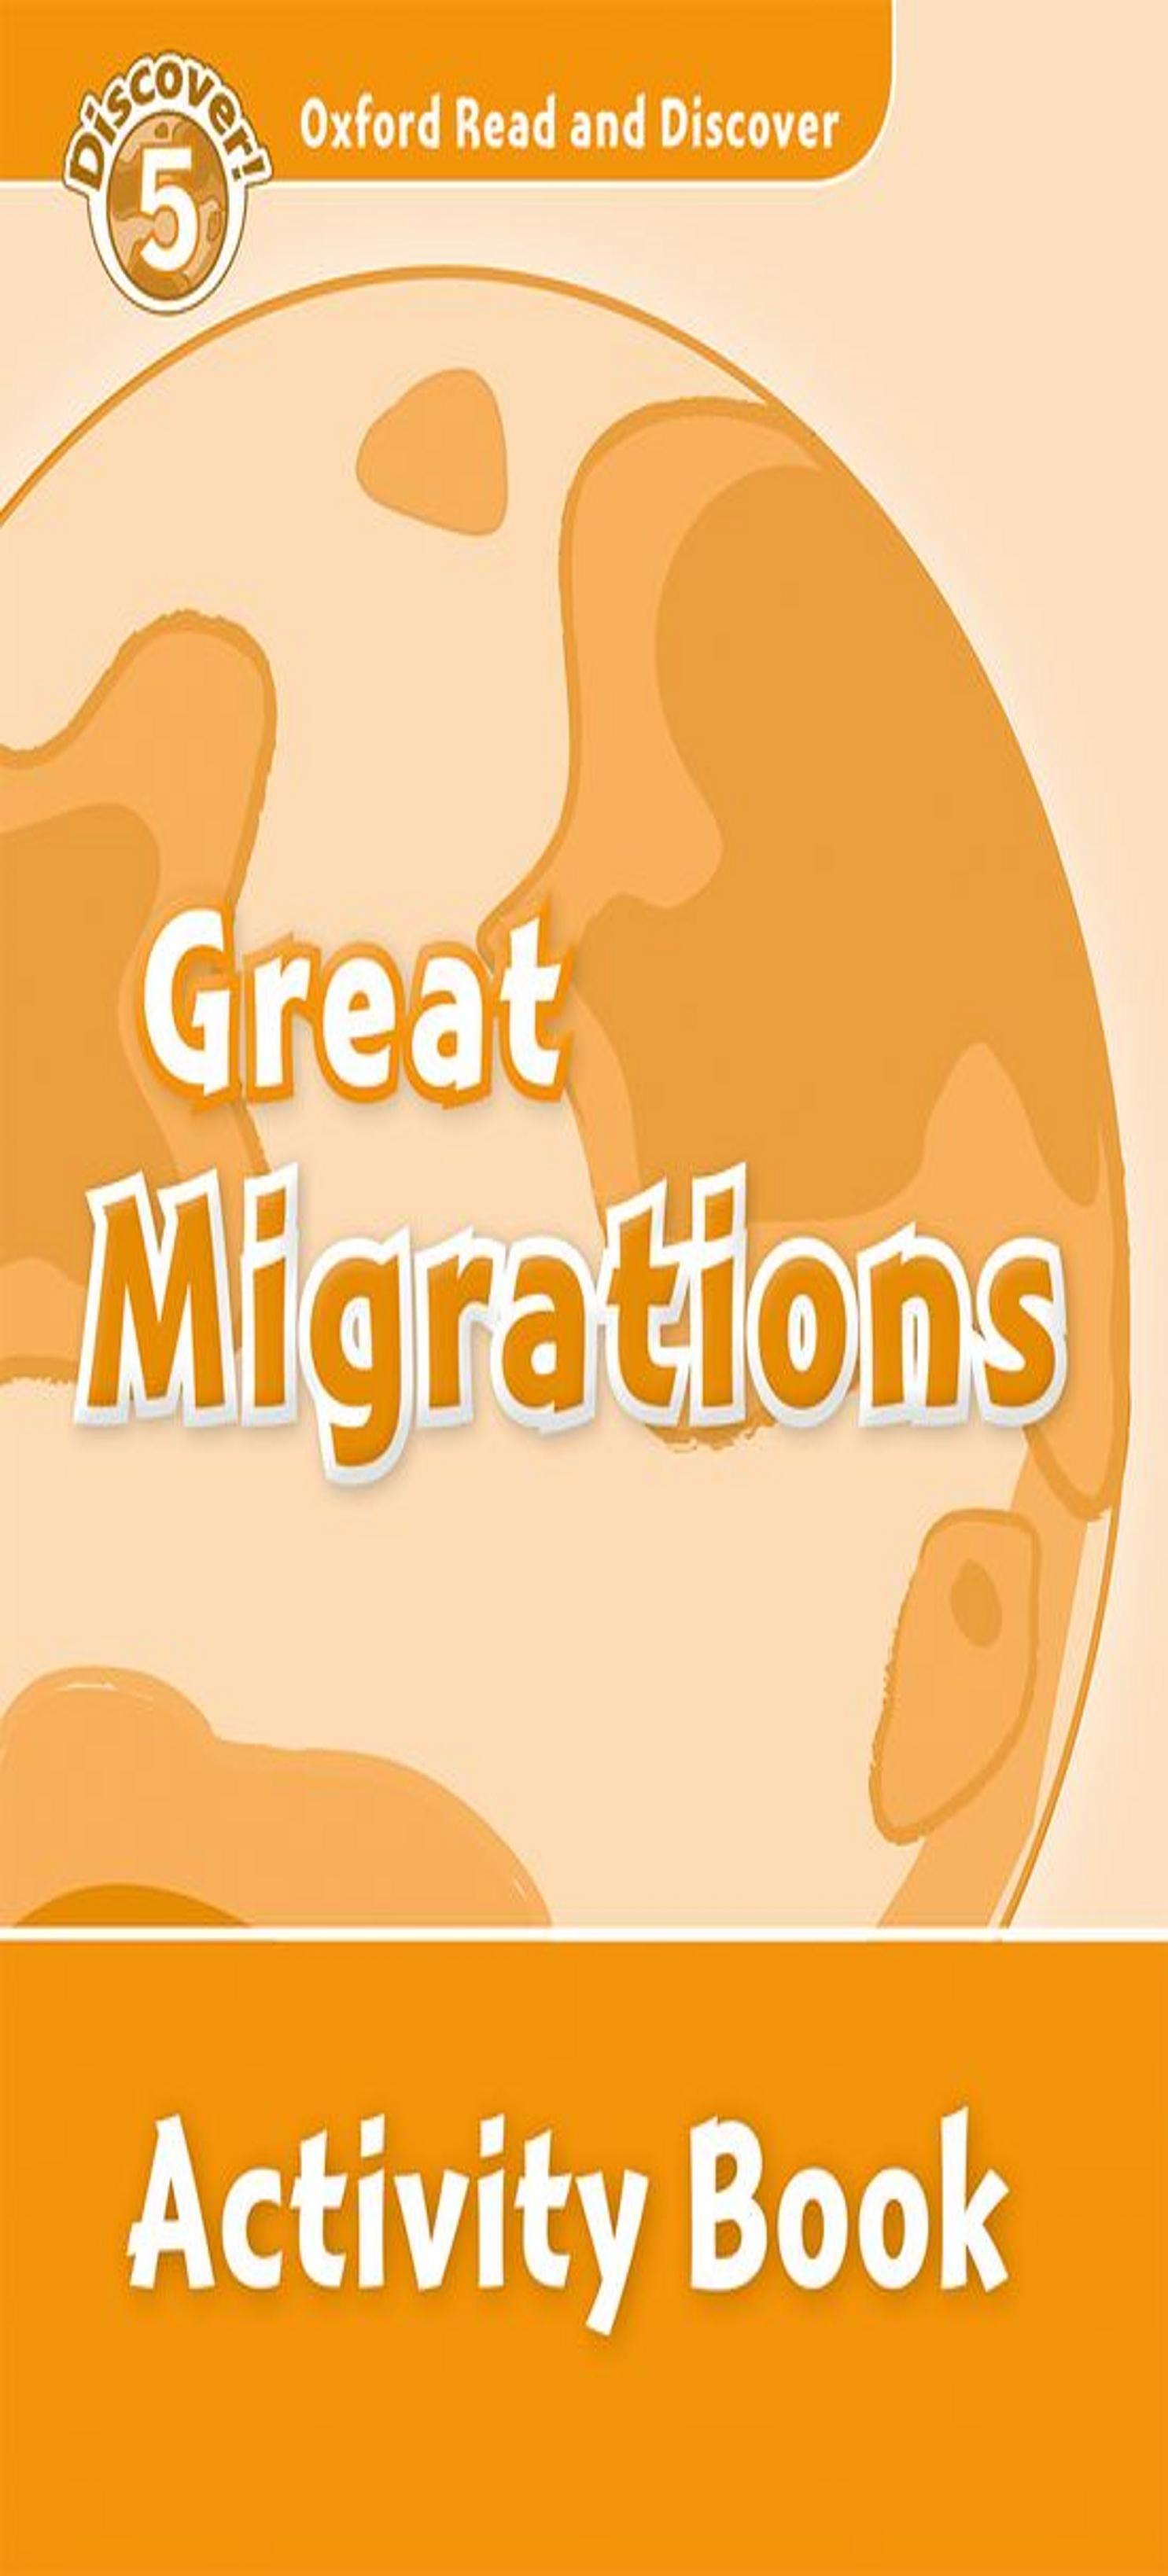 OXF RAD 5 GREAT MIGRATIONS AB